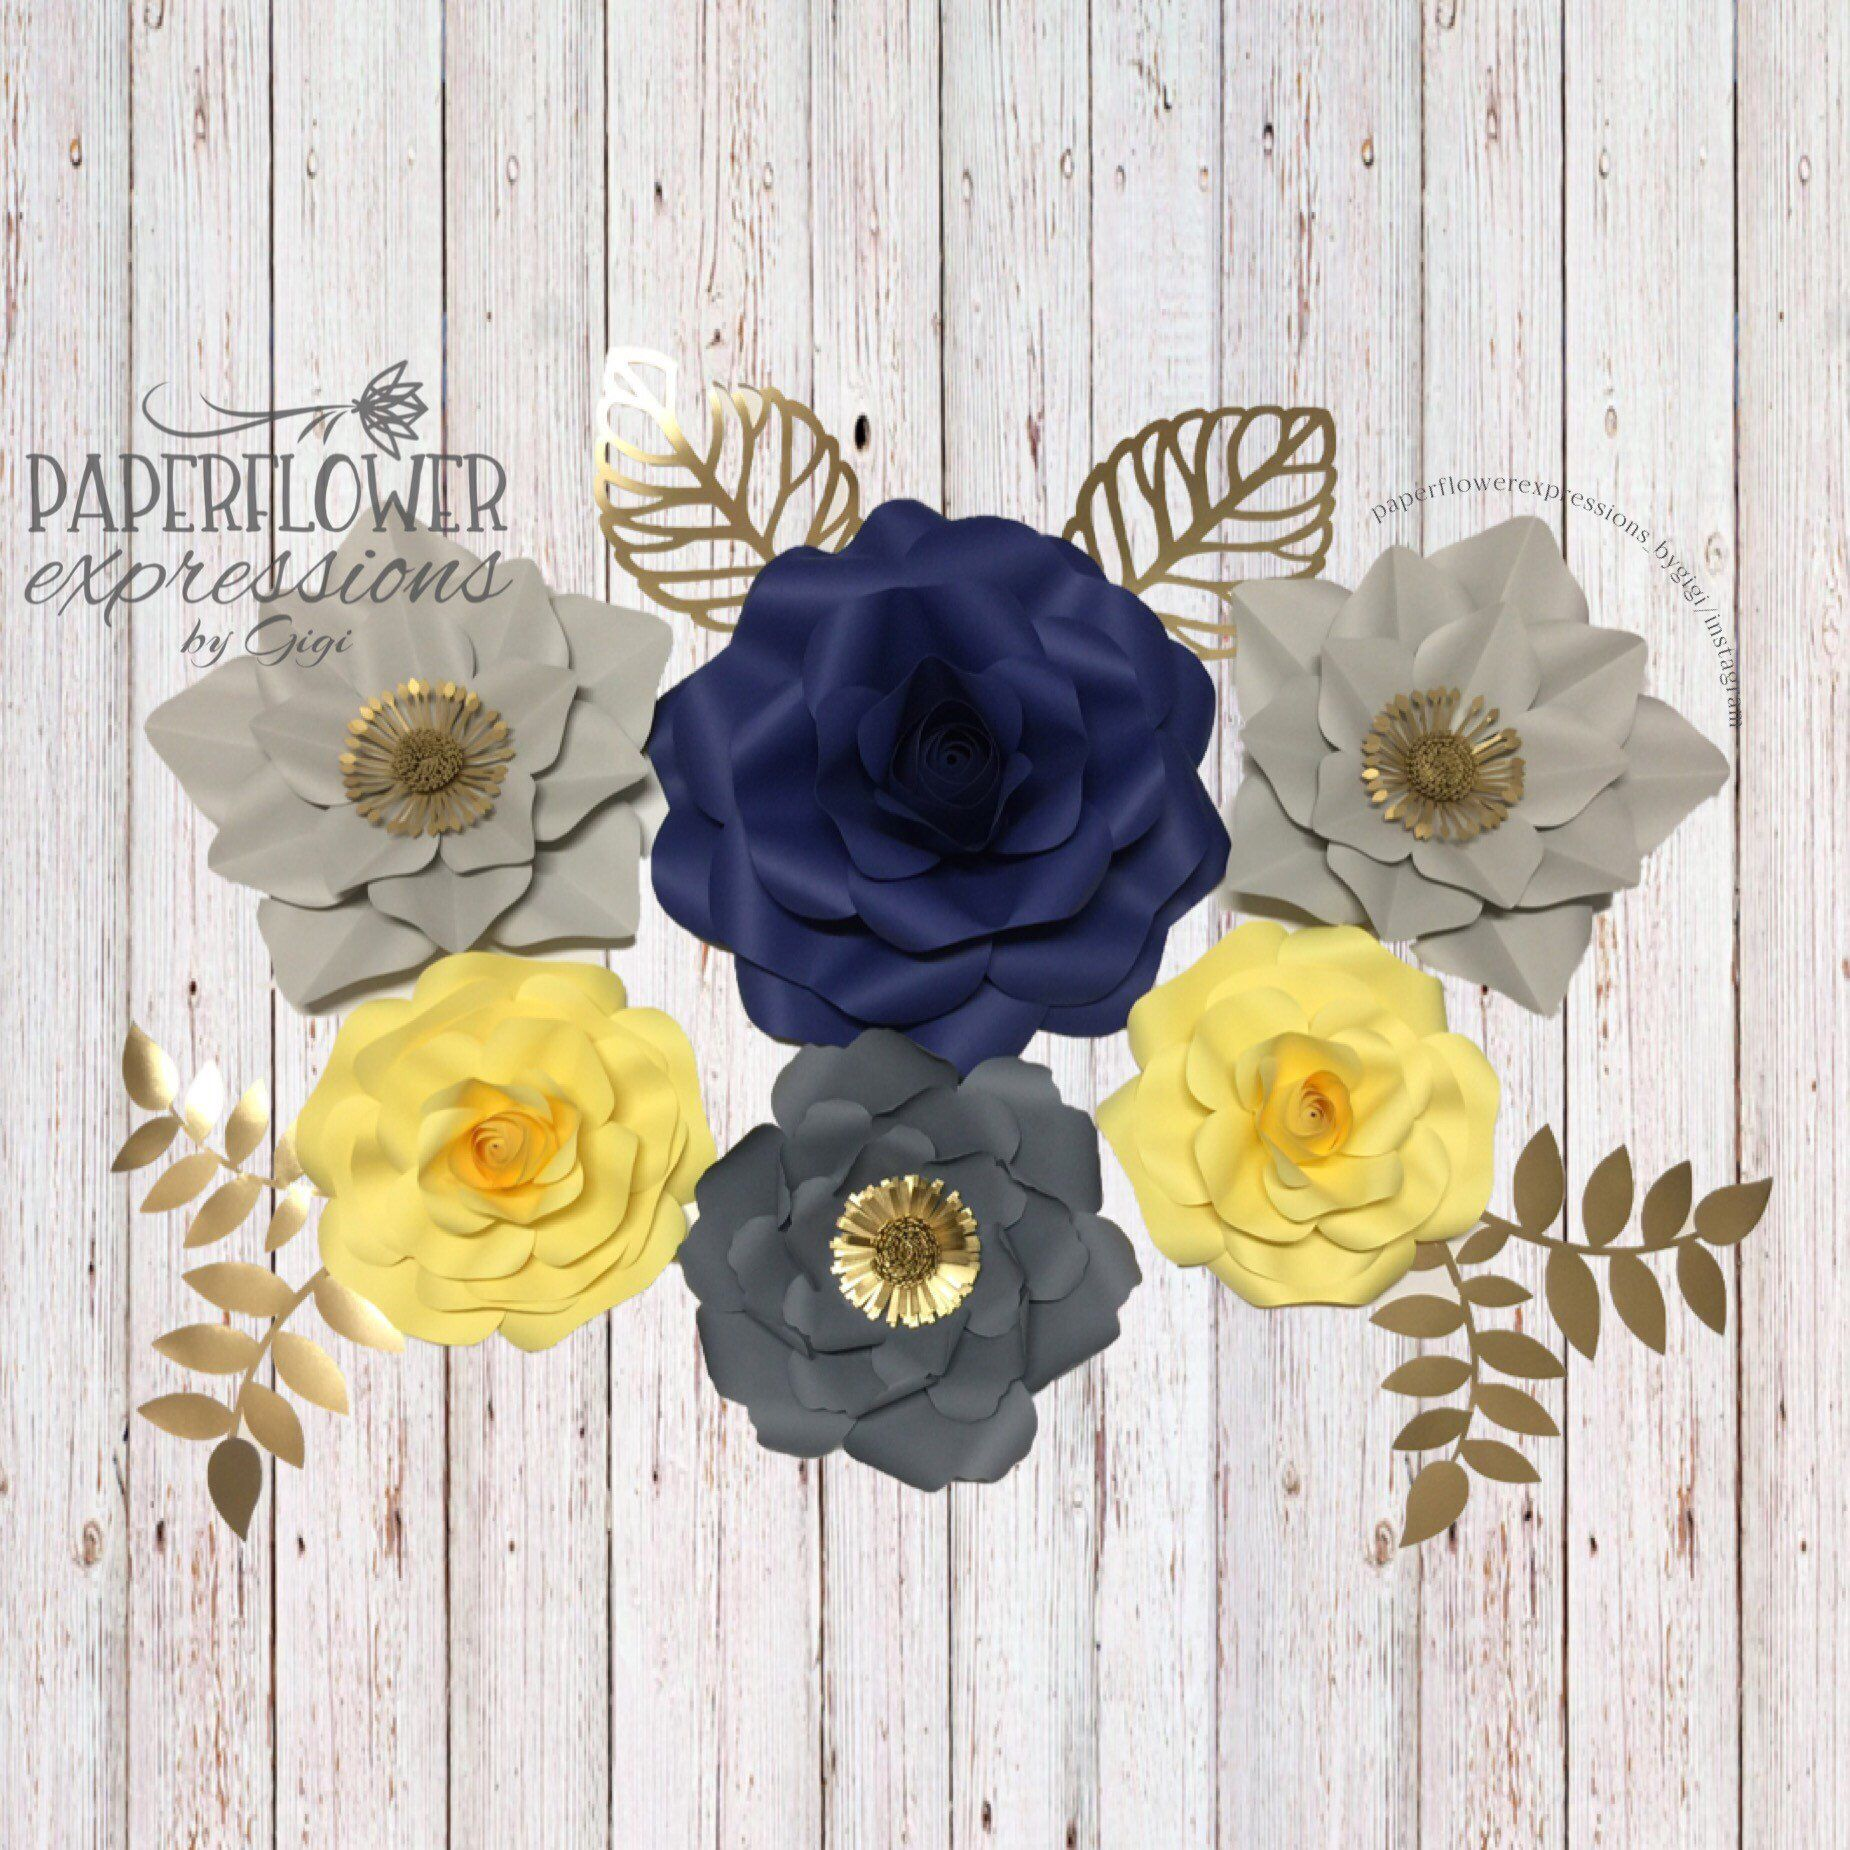 6 pc Set Gray, Yellow and Blue Large Paper Flowers | Nursery Wall Decor | Floral Wedding Decor | Giant Paper flower backdrop #constructionpaperflowers